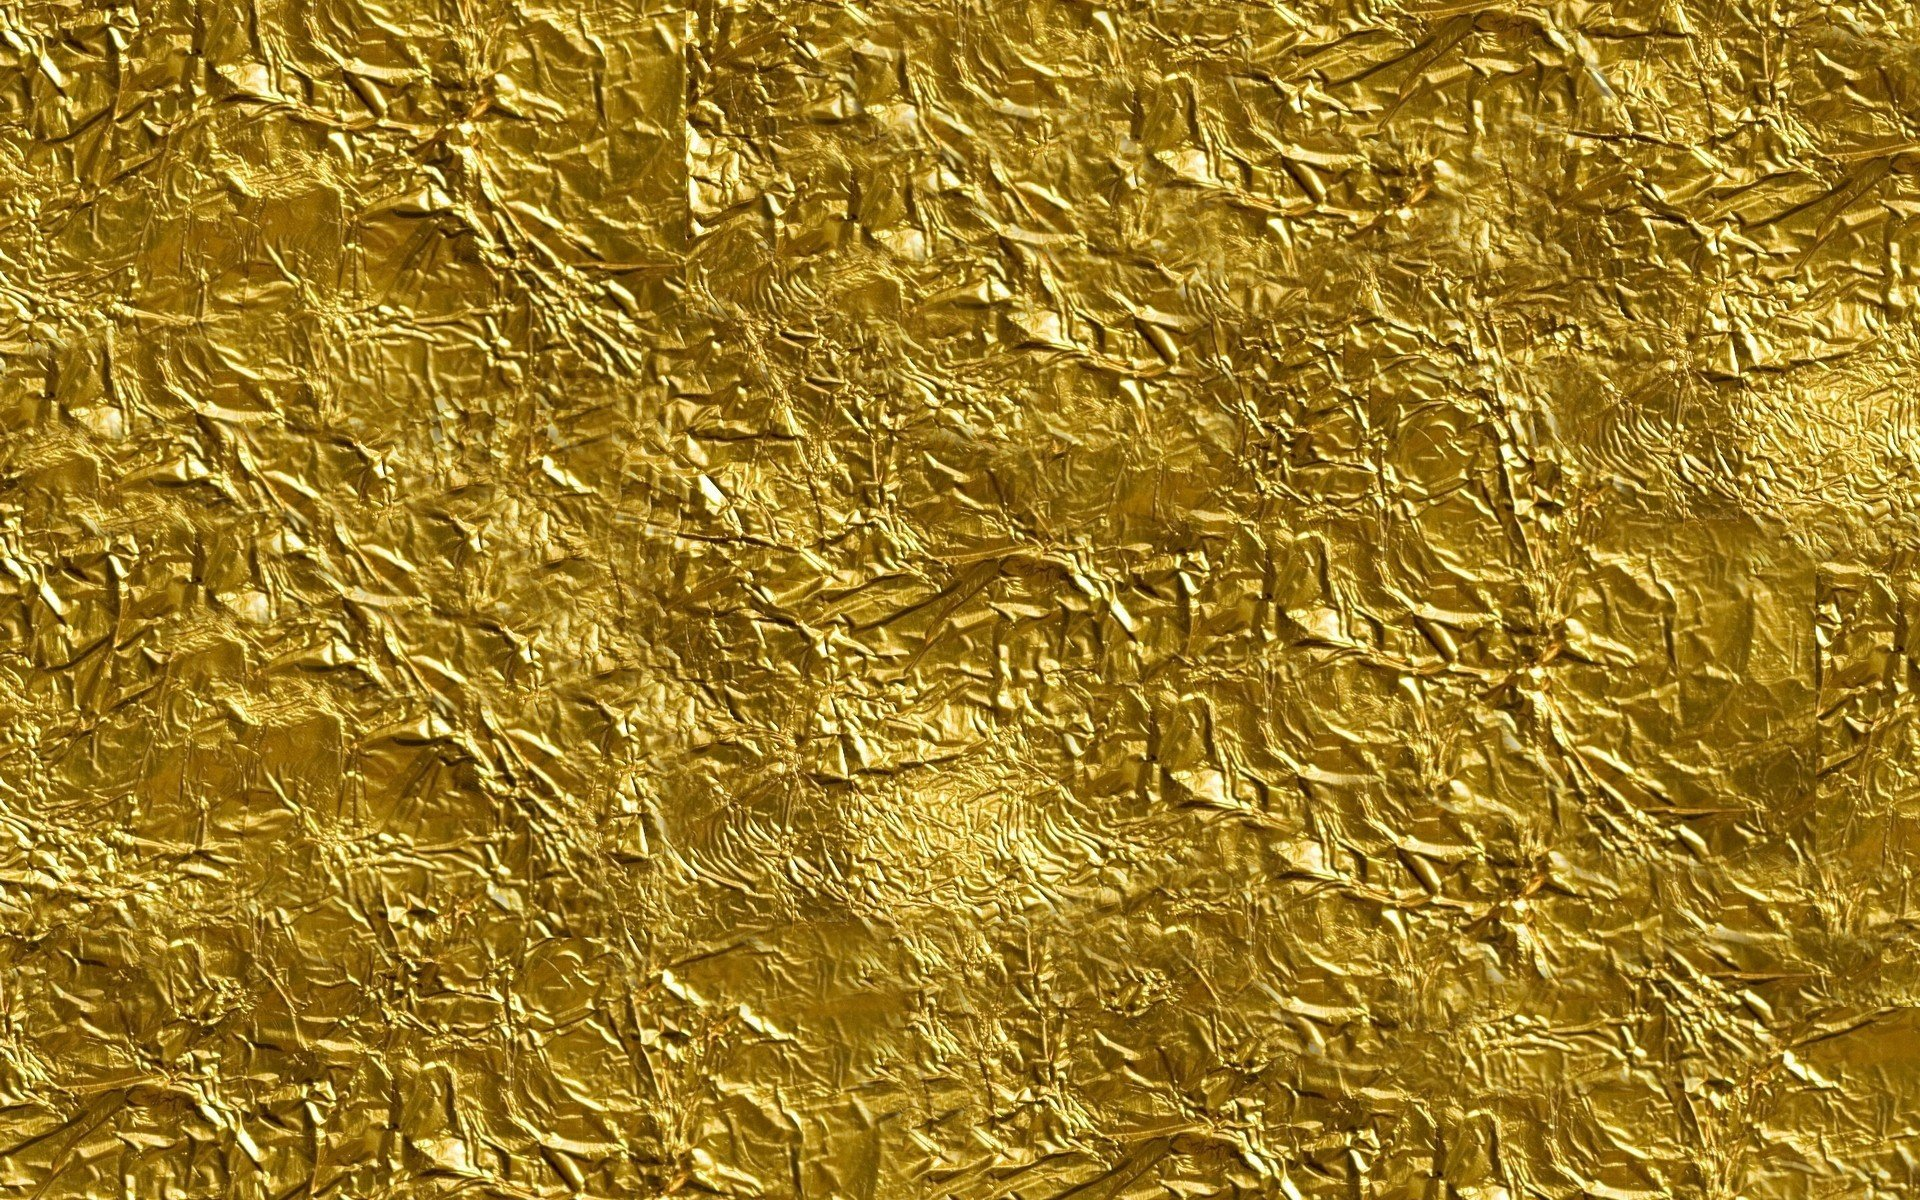 wallpaper-textures-gold-wallpapers.jpg